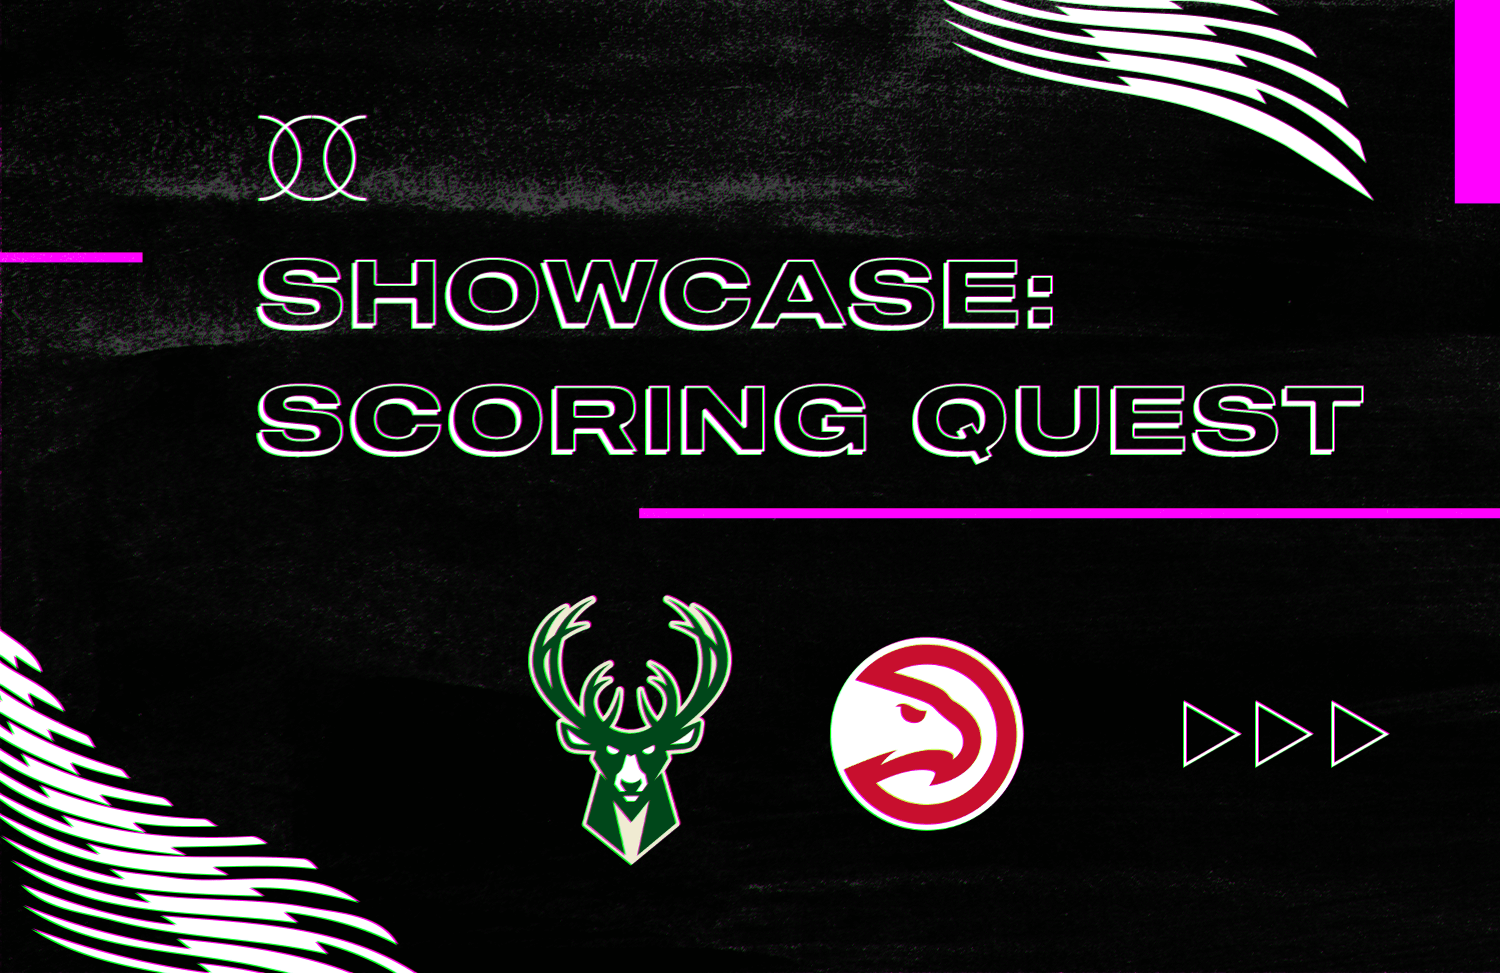 Heading into a pivotal game in Atlanta, we've got another Playoff Quest for you to enter!